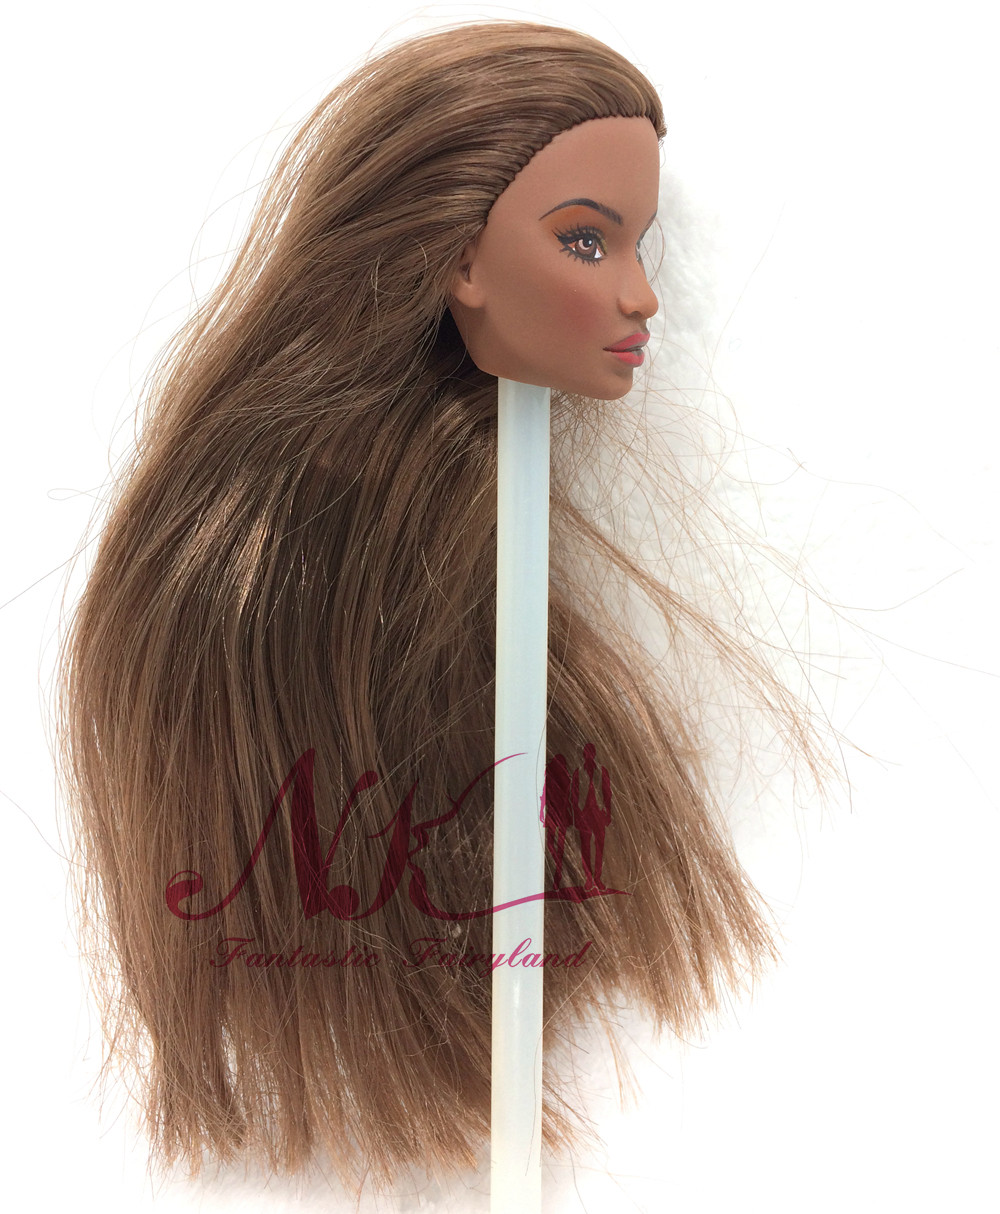 NK One Pcs Authentic FR Doll Head  For FR Dolls 2002 Restricted Version Assortment Black Hair Finest DIY Present For Women'  Doll zero04L